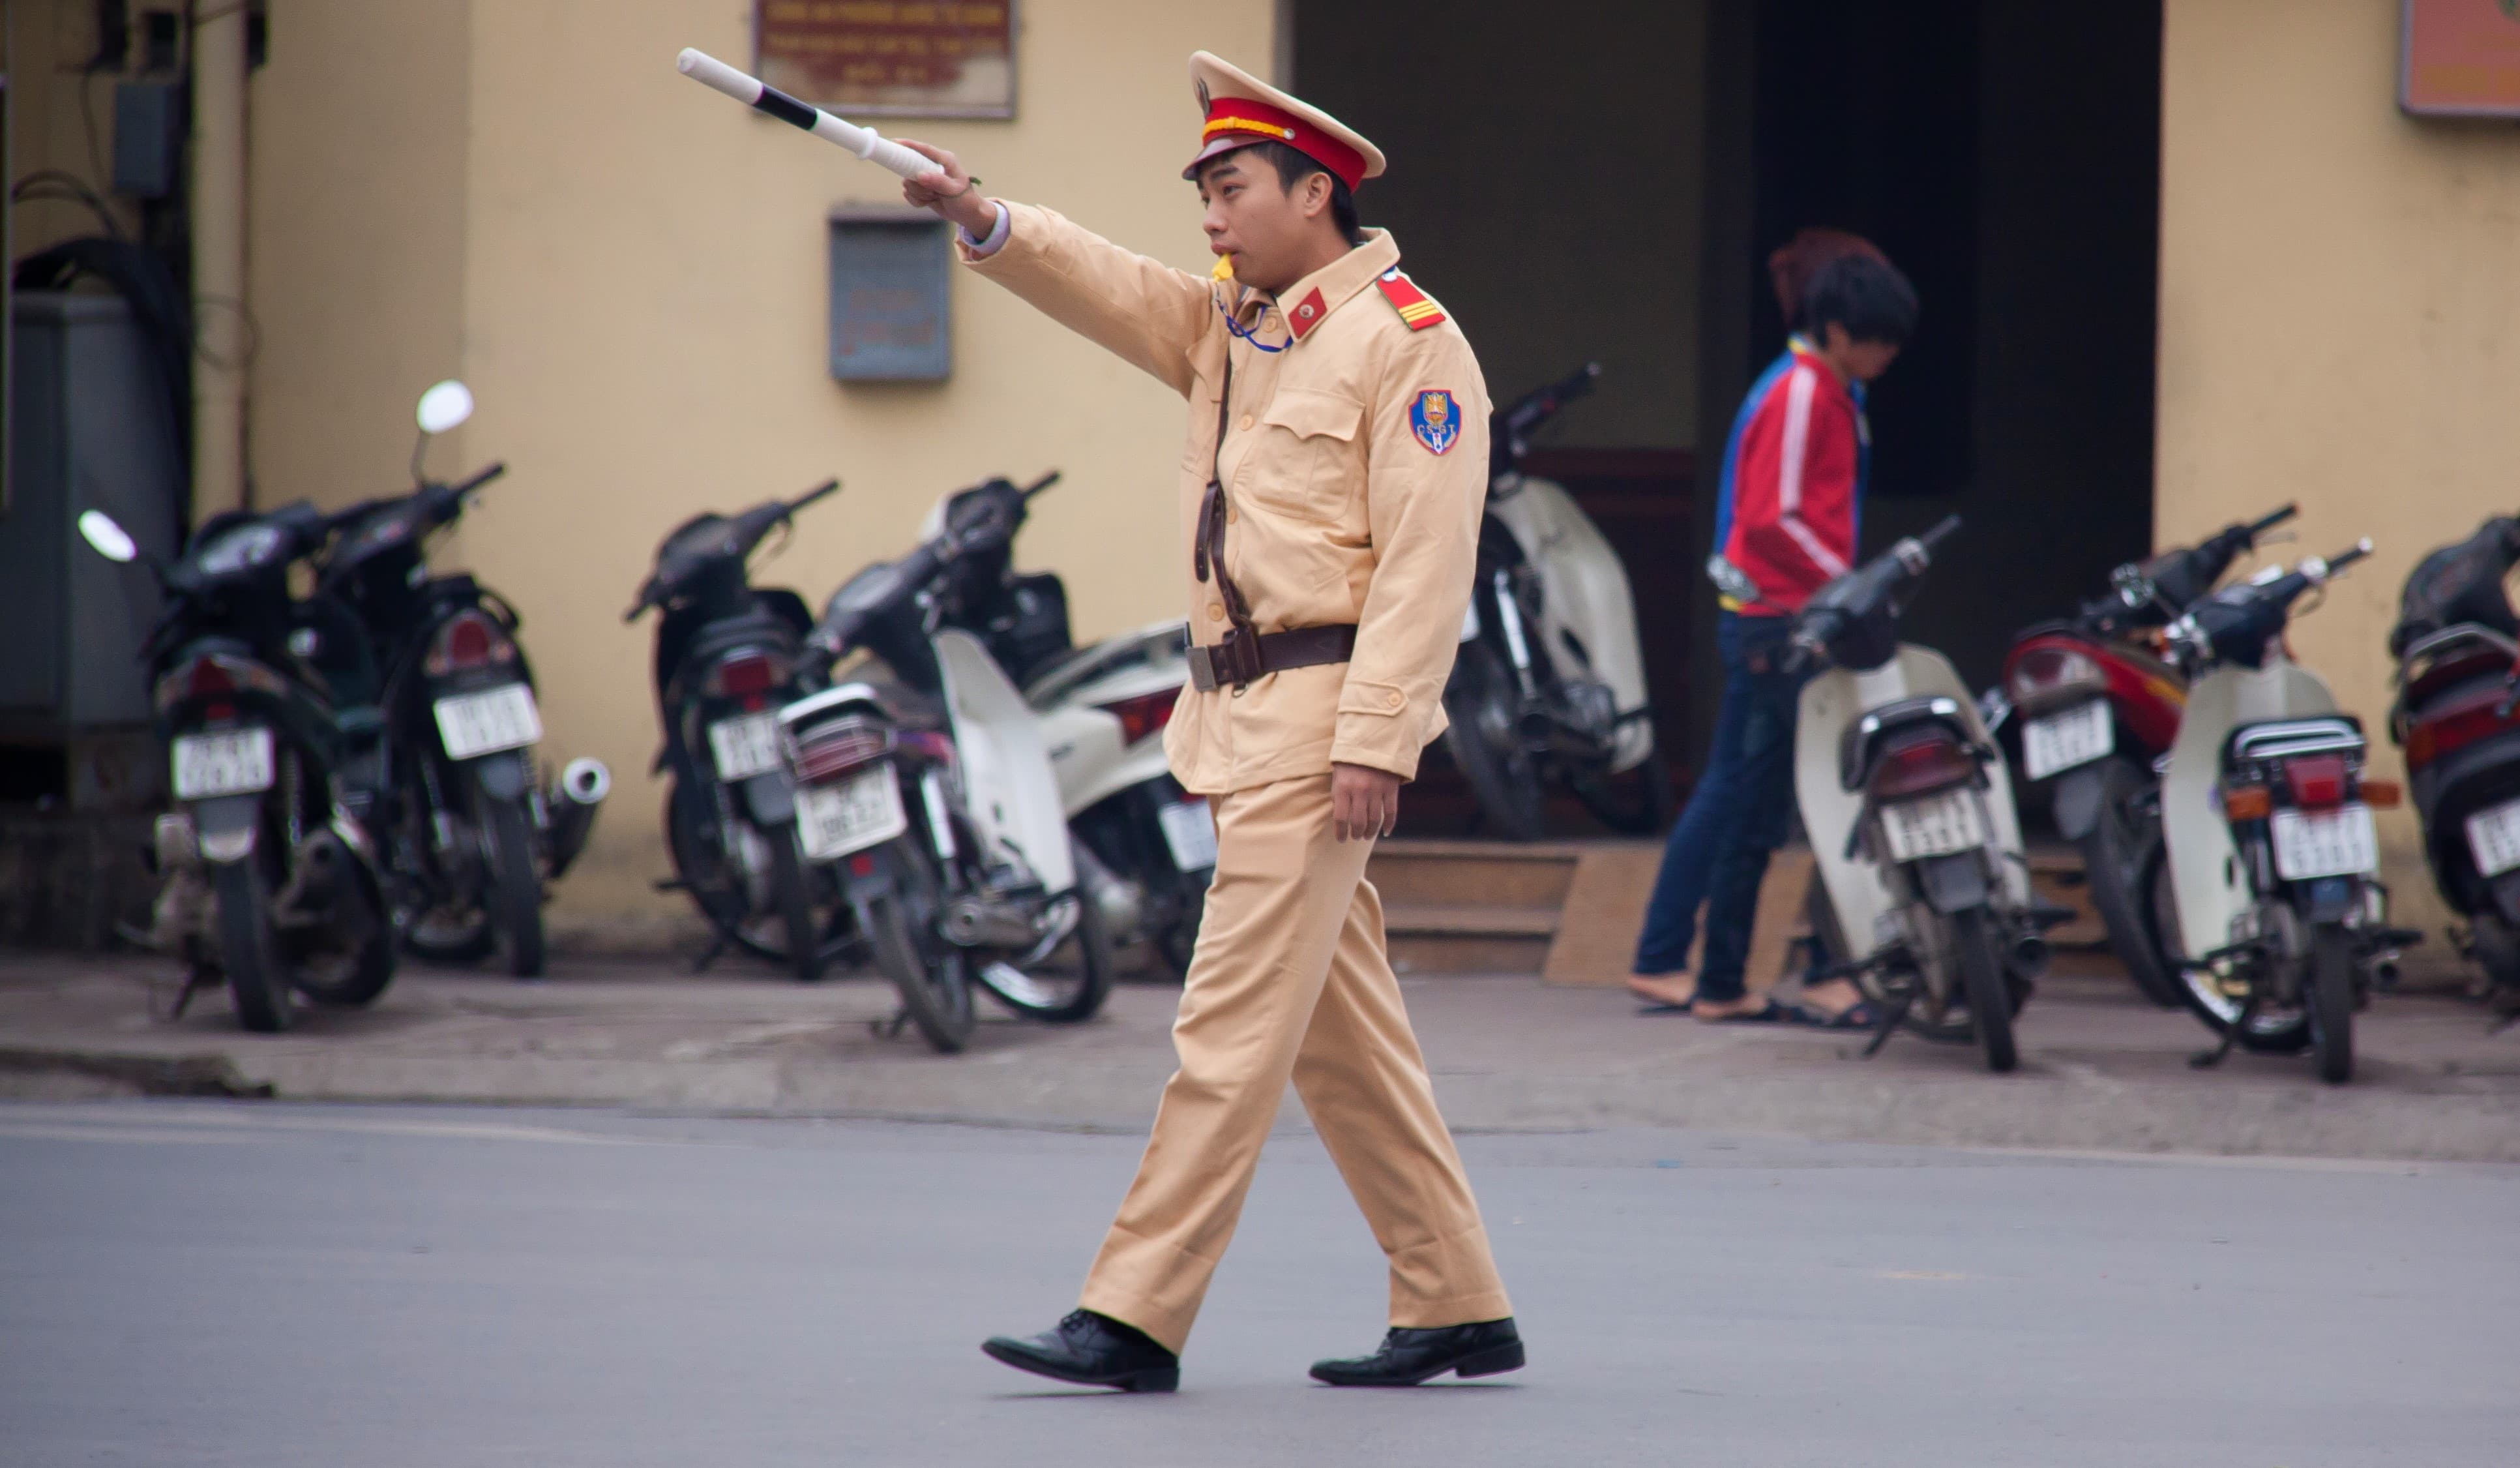 Police officer in Hanoi (Photo: Chris Goldberg/Flickr)